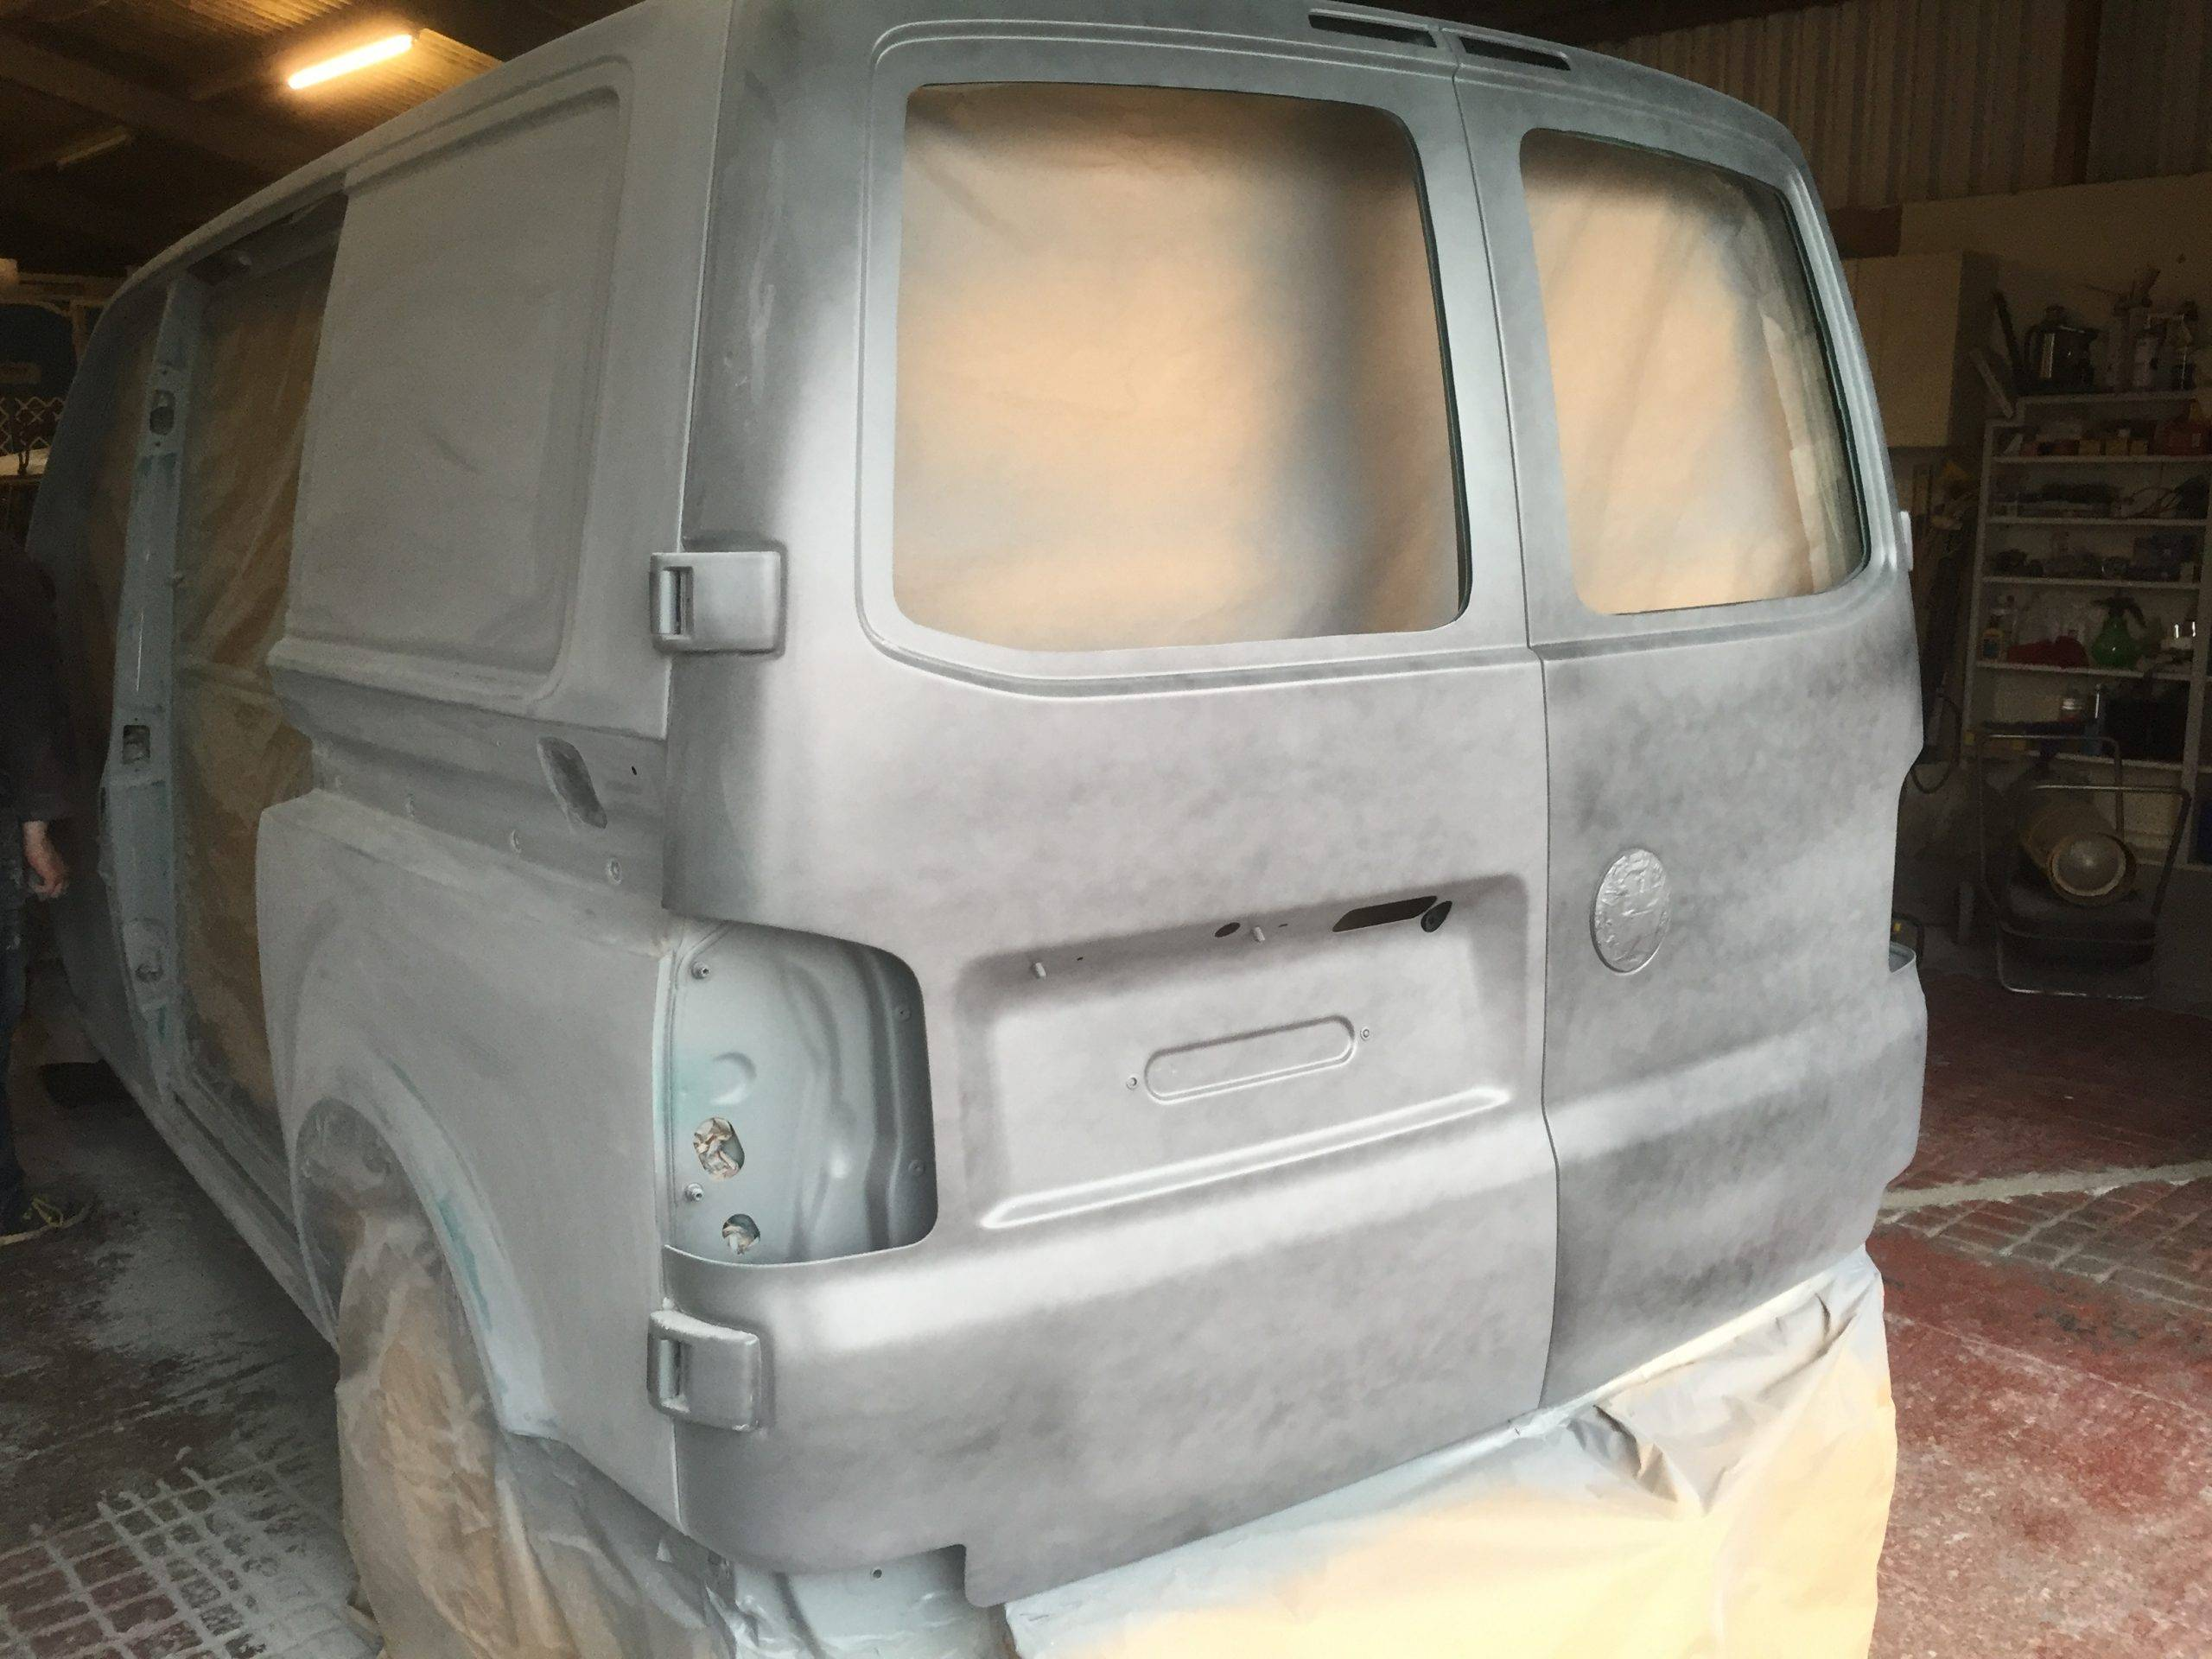 paint job on vw camper